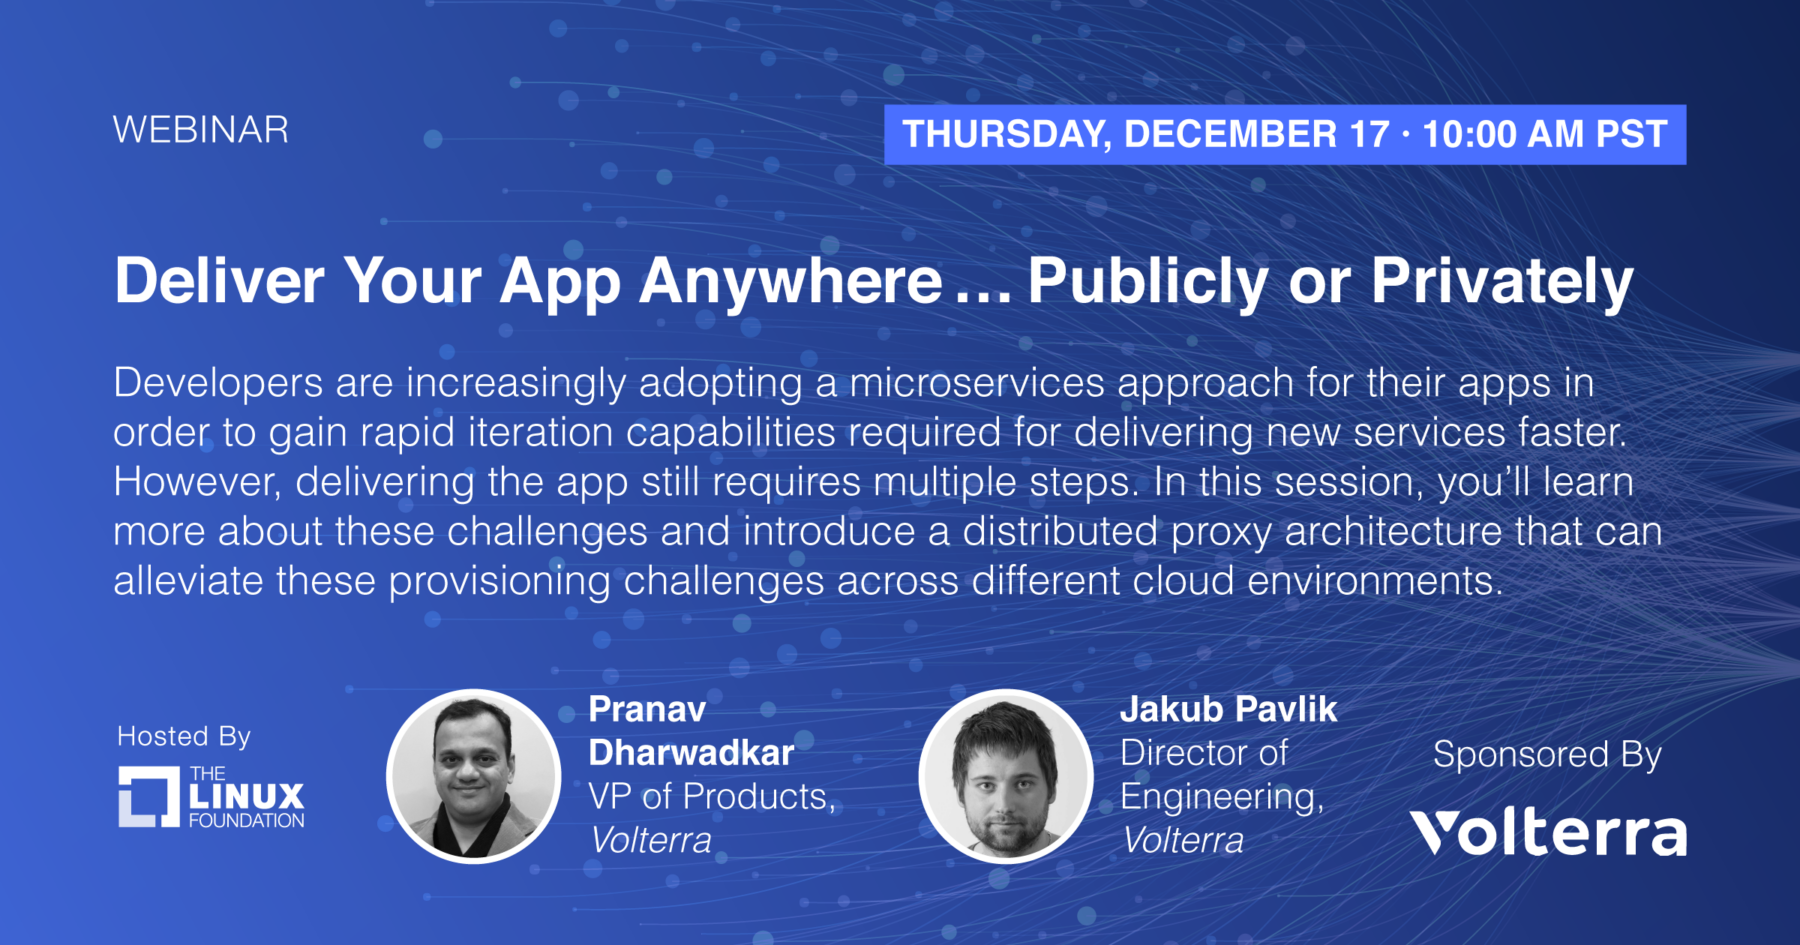 Webinar - Deliver Your App Anywhere … Publicly or Privately